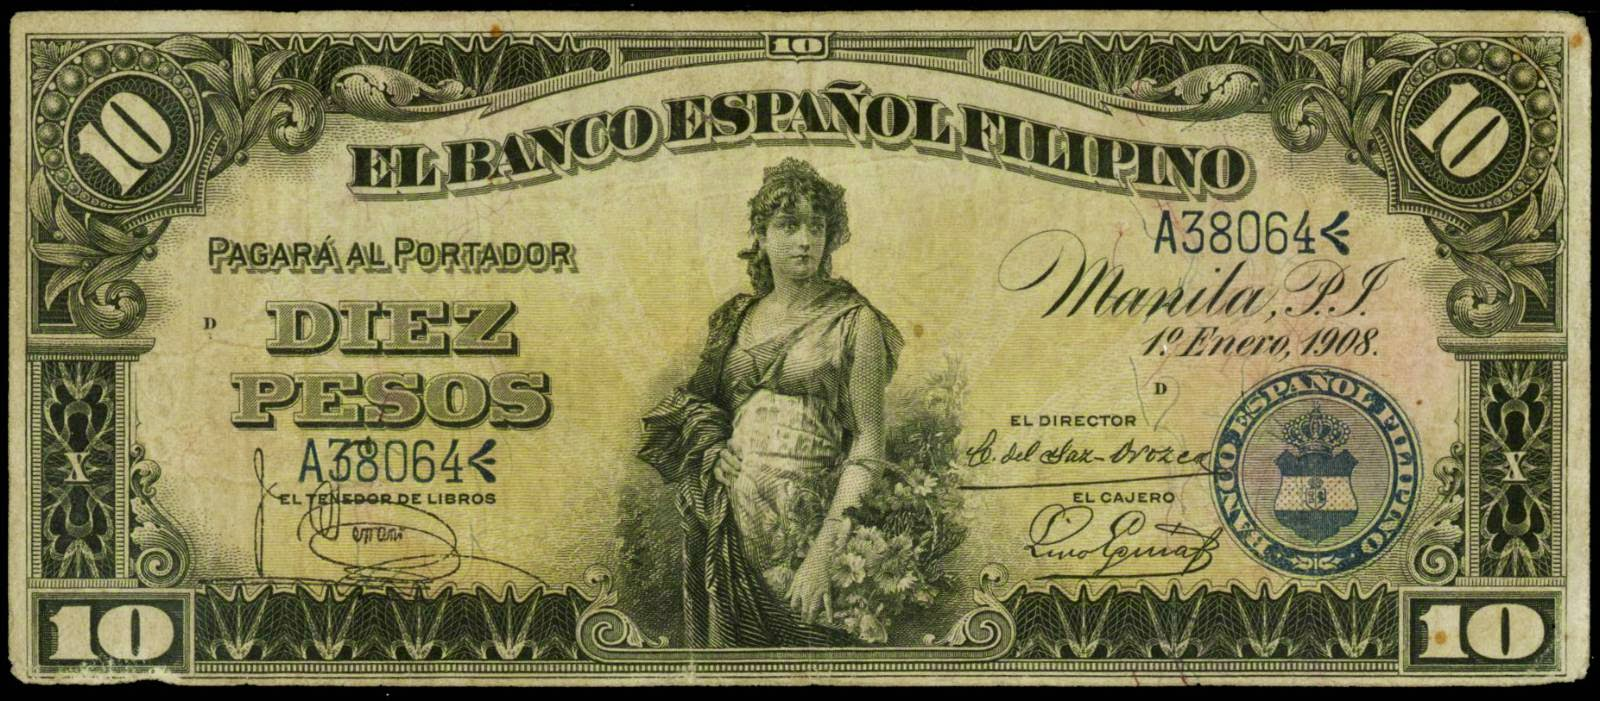 US Philippines currency 10 Pesos note 1908 Banco Espanol Filipino